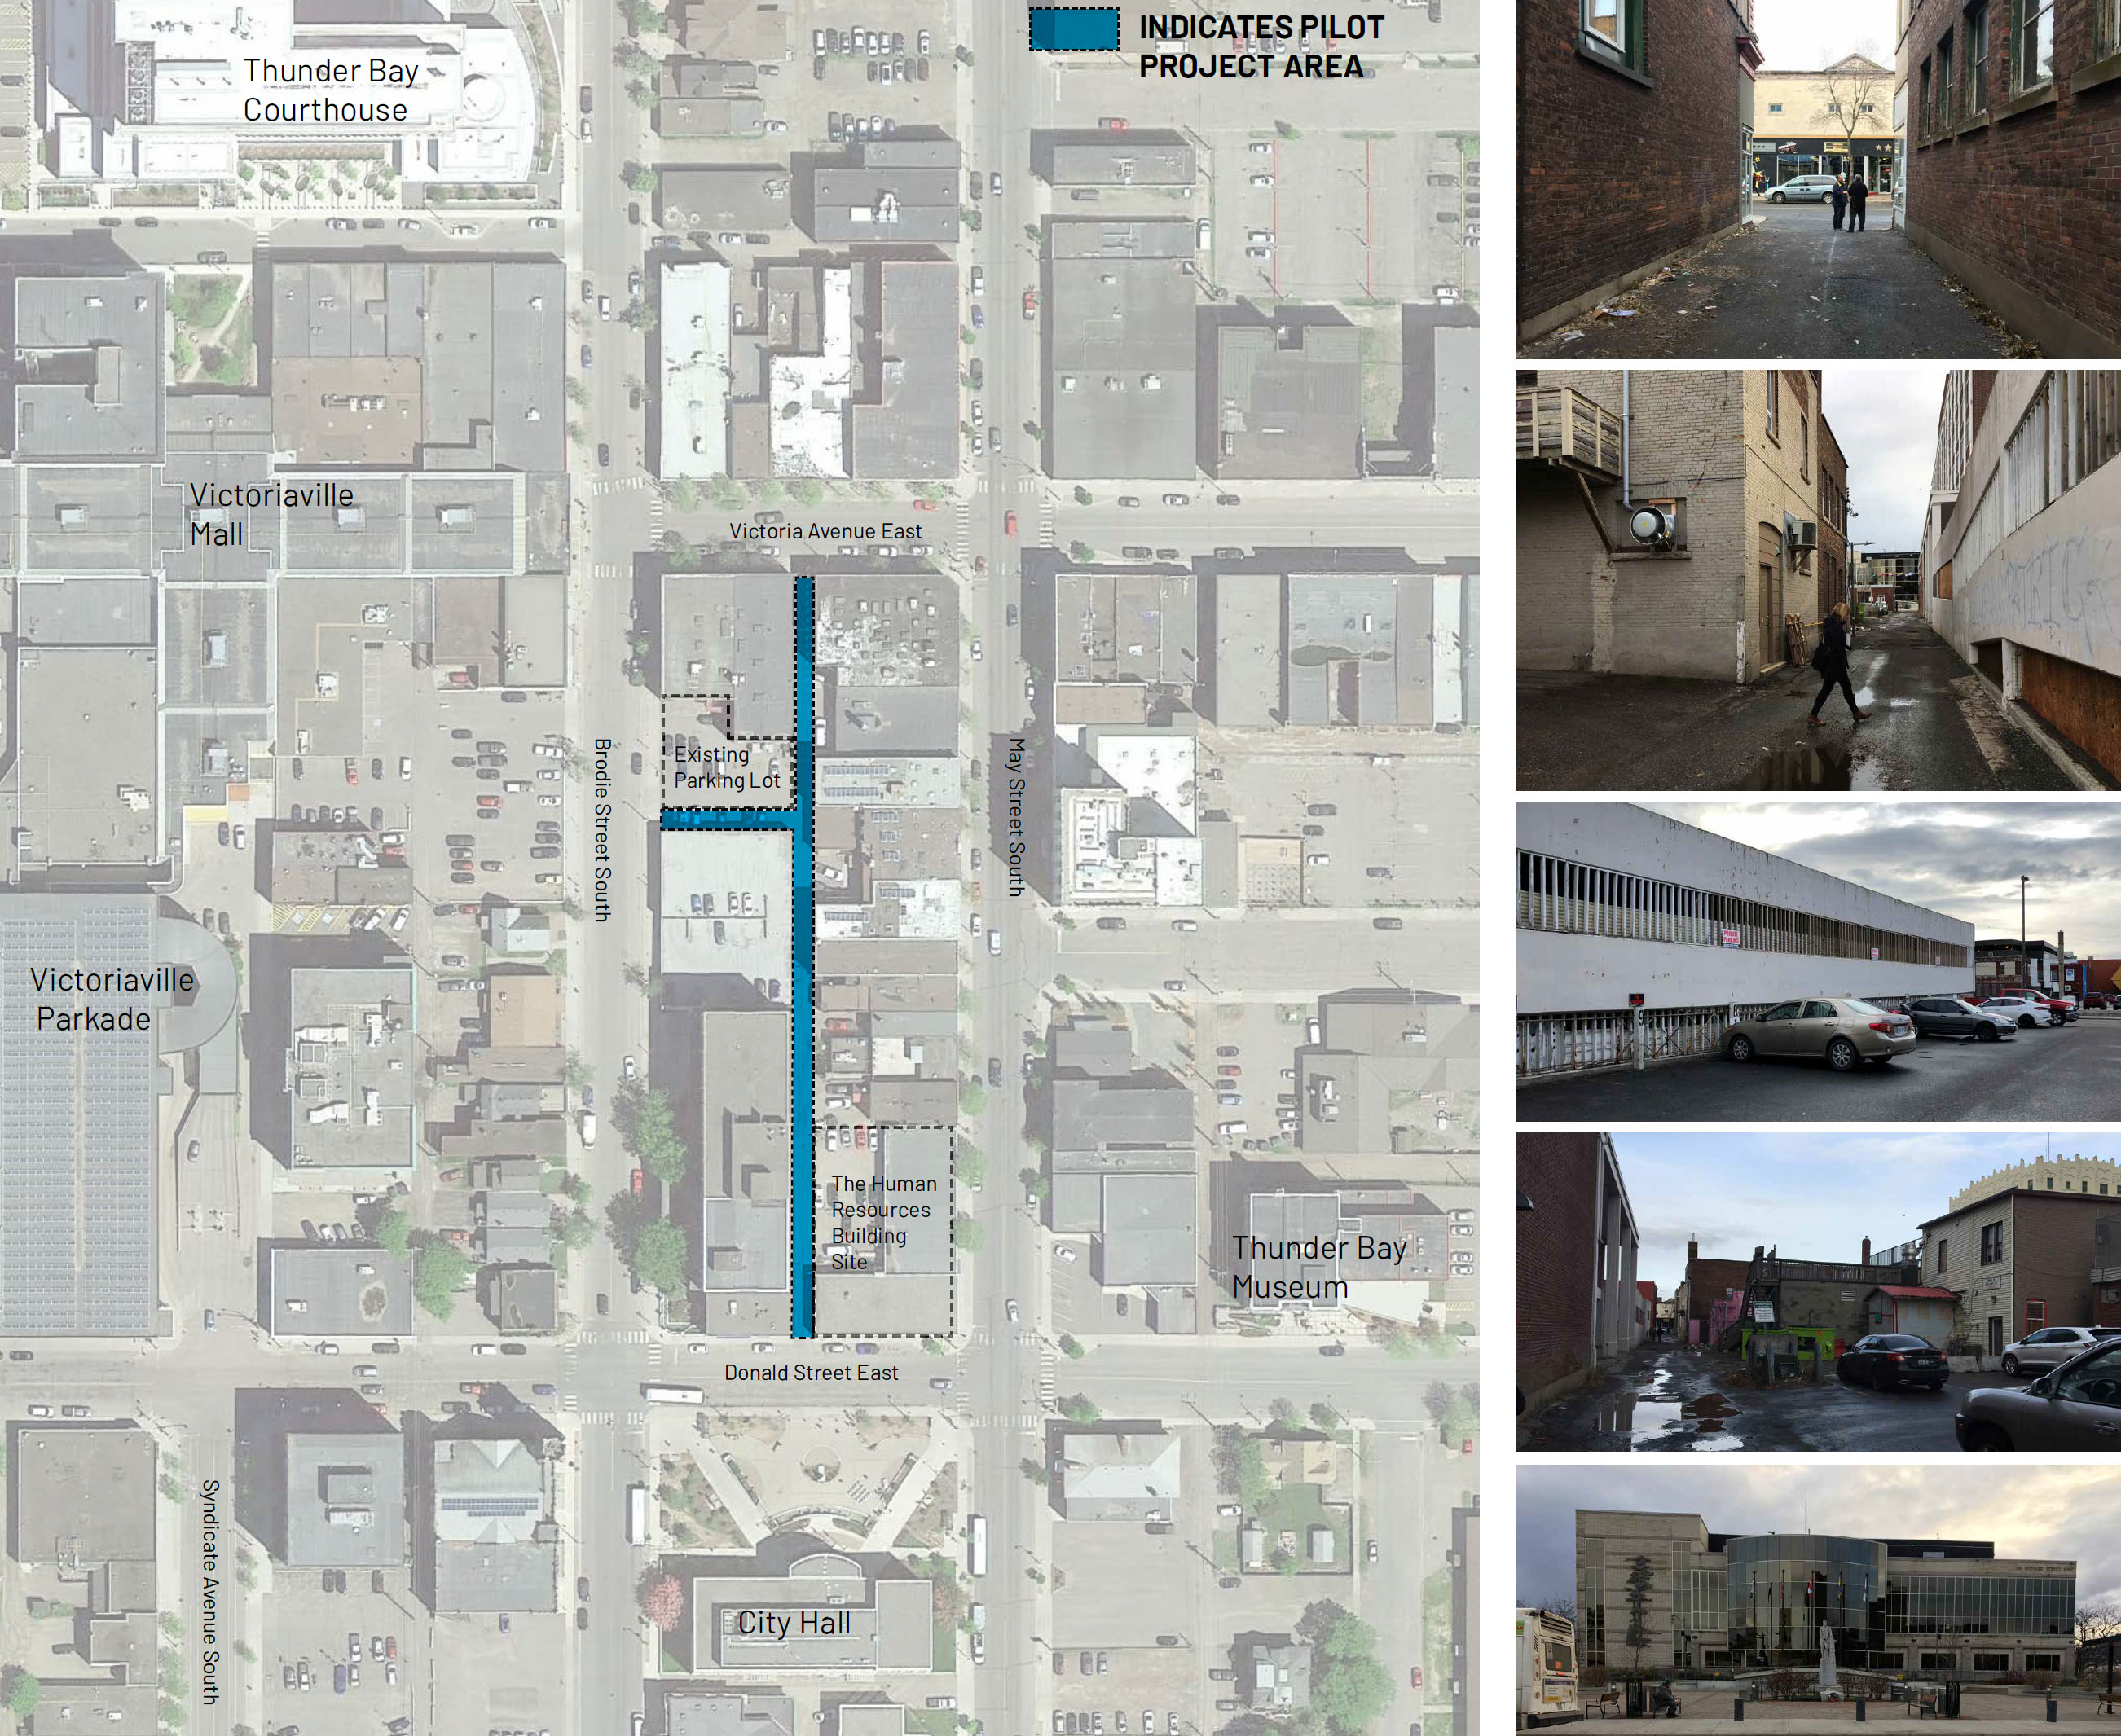 The first laneway under review runs parallel between May Street South and Brodie Street South and extends between Donald Street East and Victoria Avenue East.